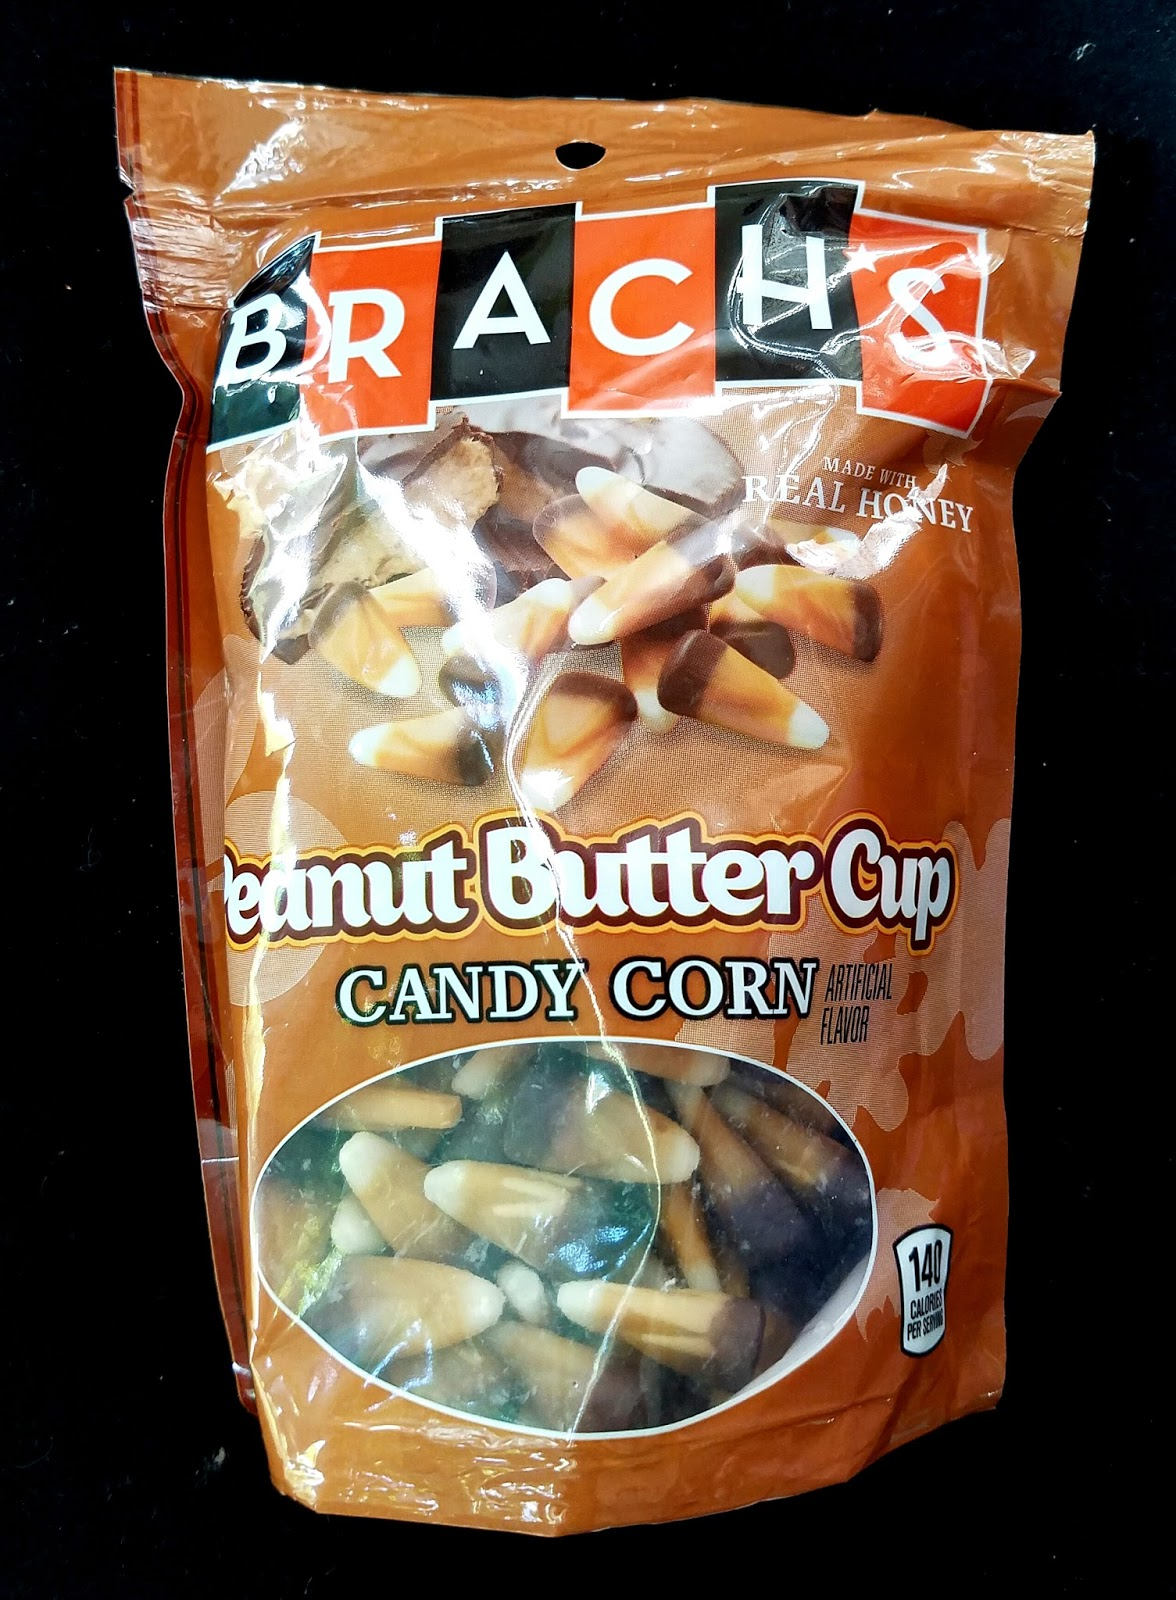 Obsessive Sweets: Candy Corn in Myriad Flavors: Brach's Peanut Butter Cup Candy Corn